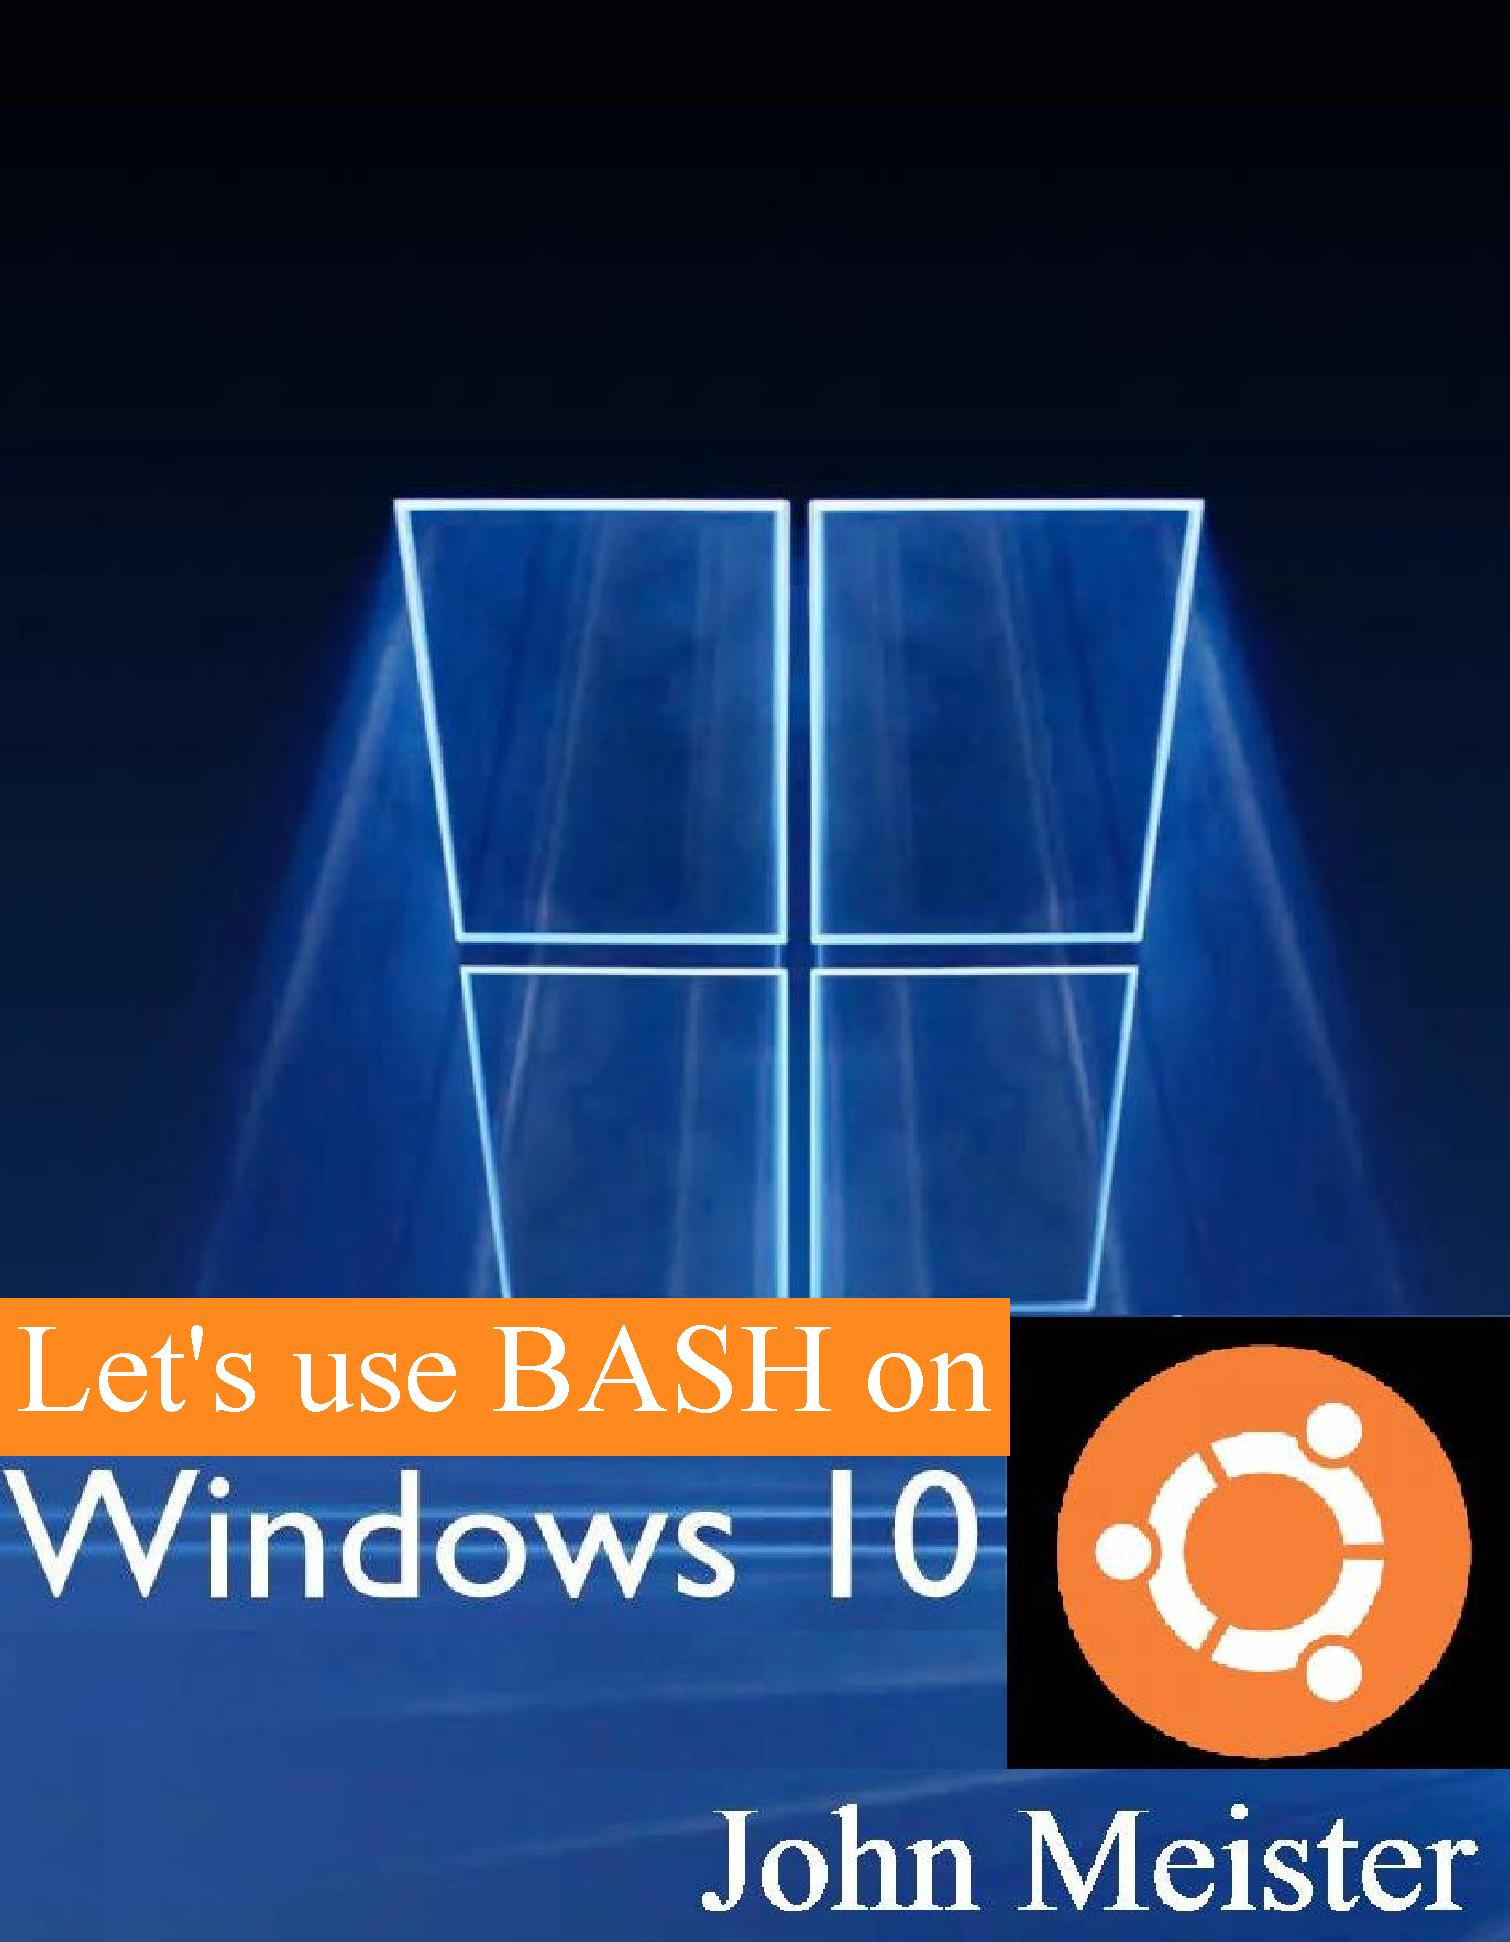 Using BASH on Windows 10